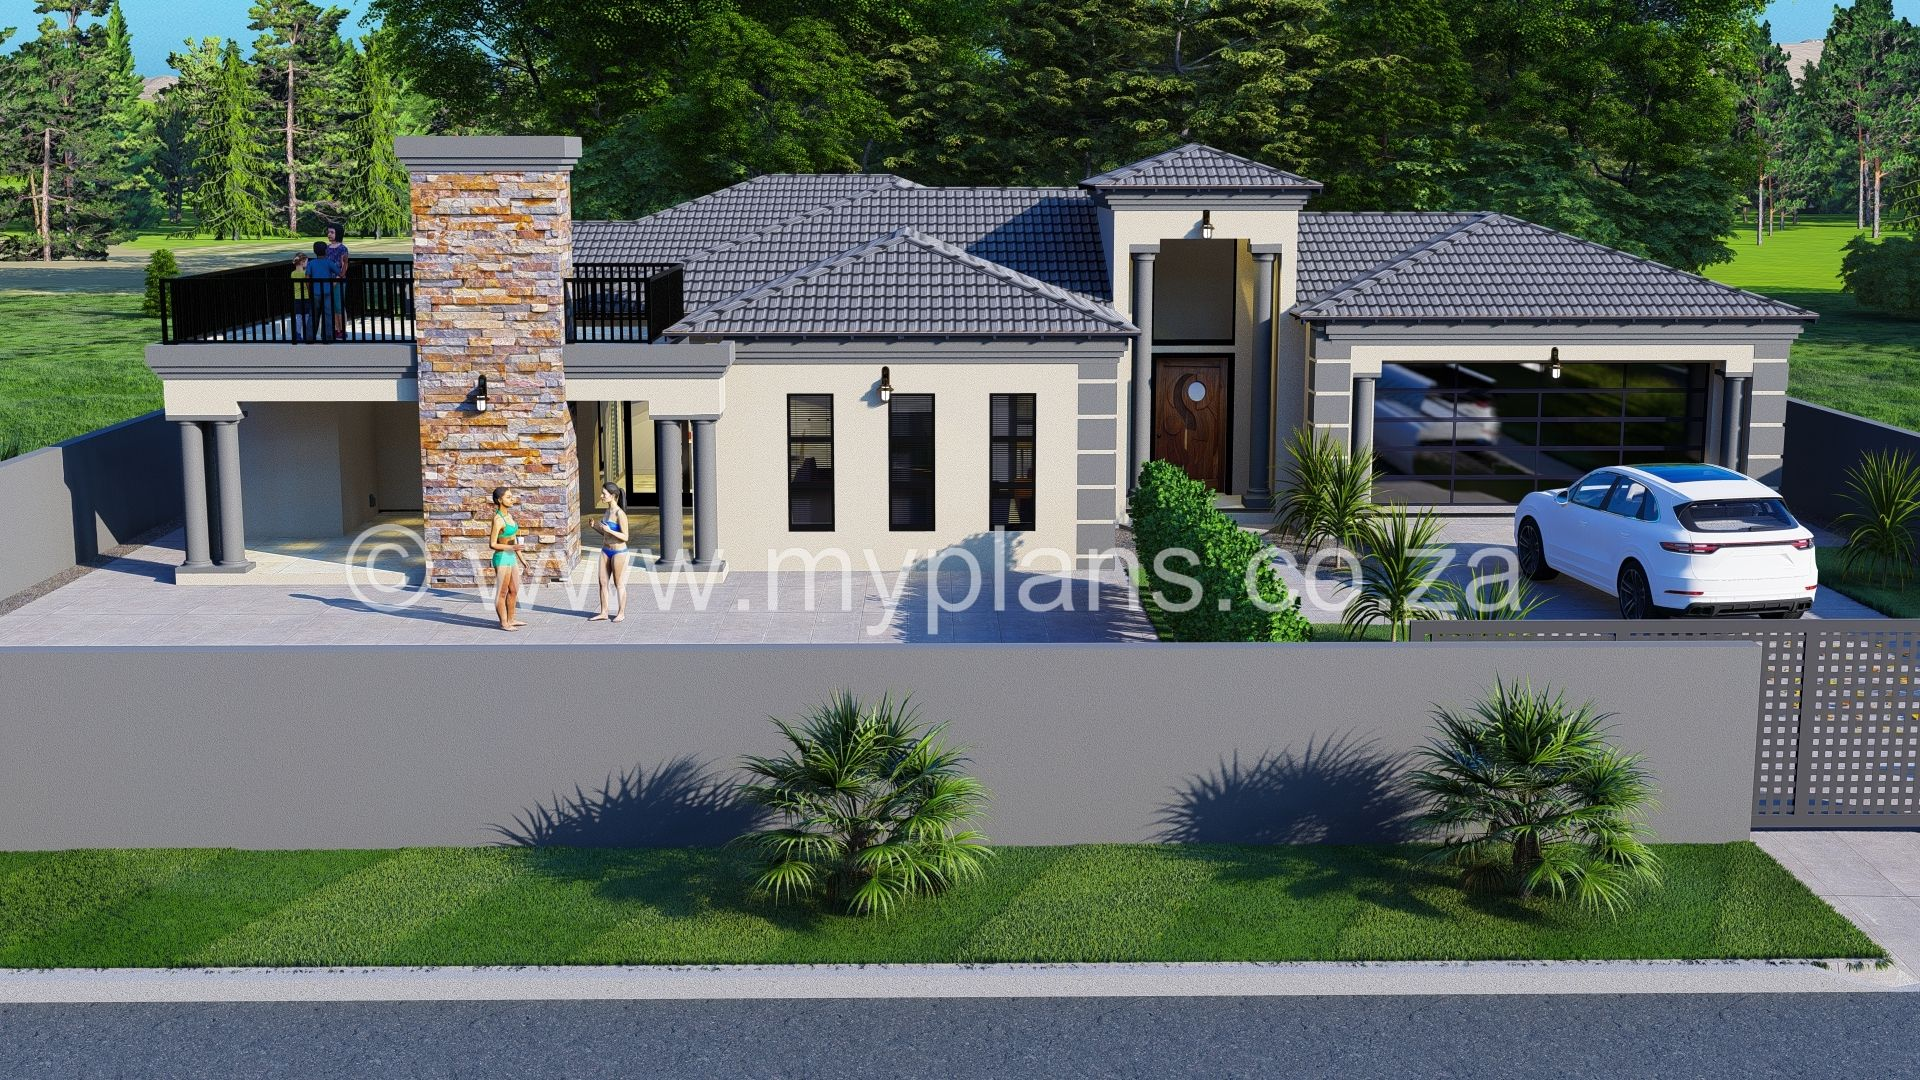 4 Bedroom House Plan Bla 021 10s 4 Bedroom House Plans Tuscan House Plans House Plans South Africa